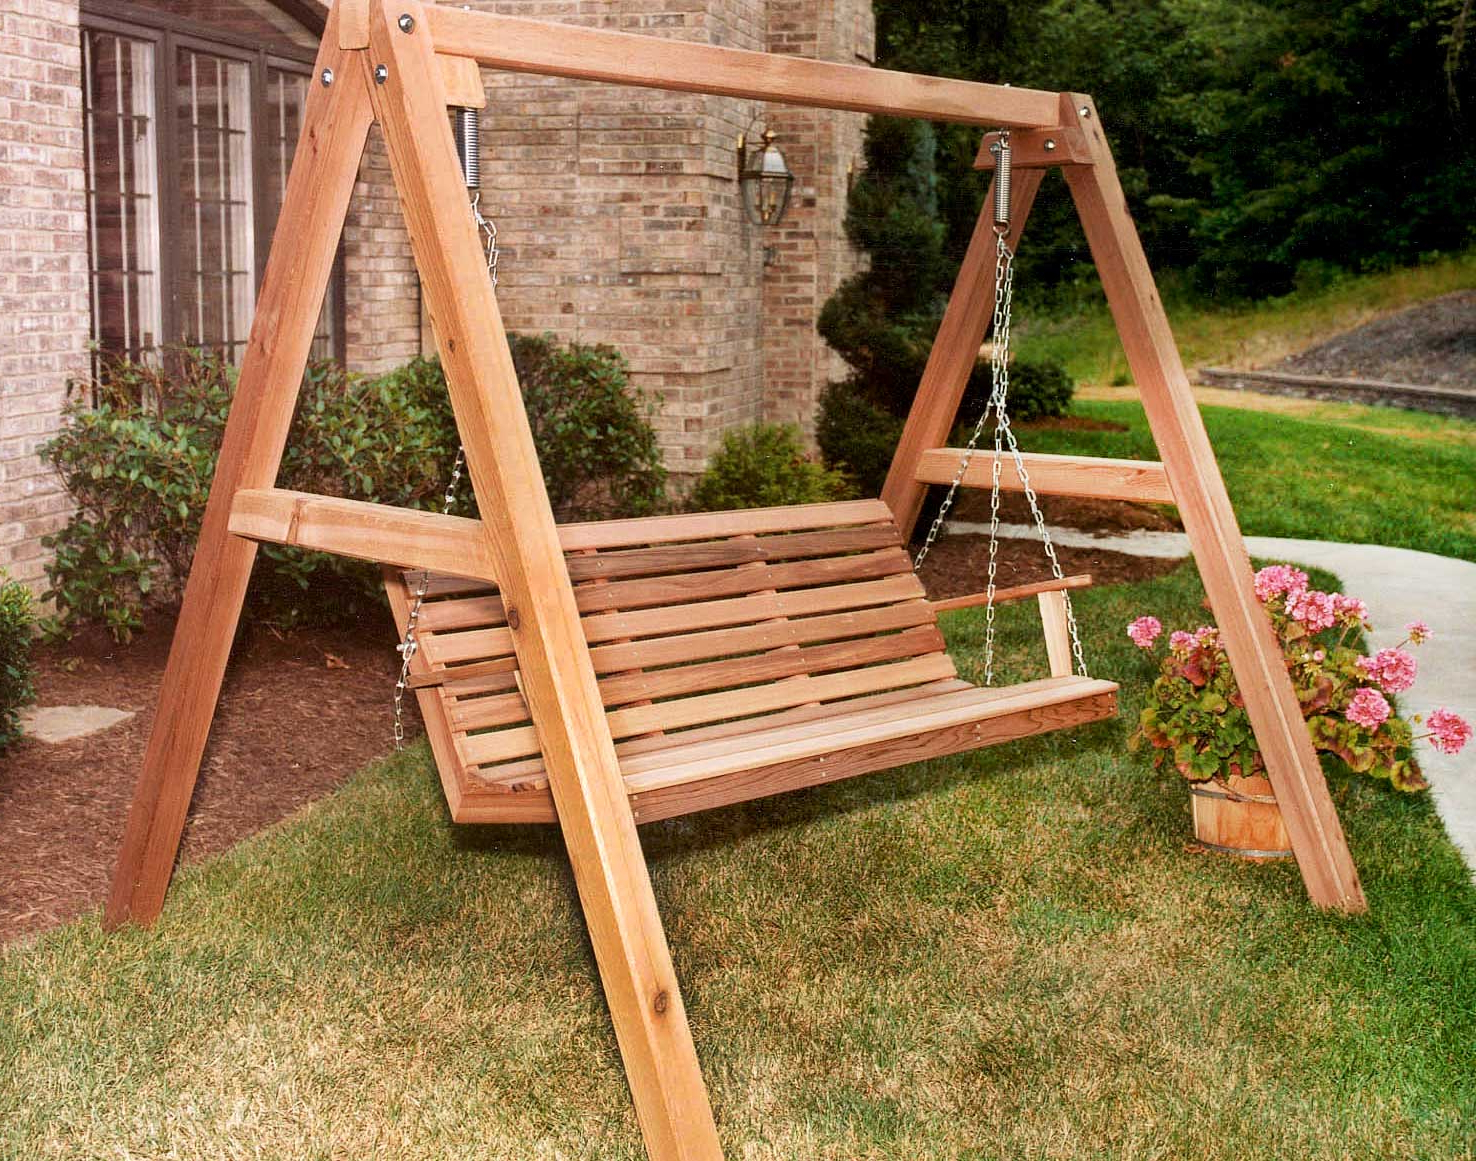 Widely Used Red Cedar American Classic Porch Swing W/stand In Porch Swings With Stand (View 5 of 25)